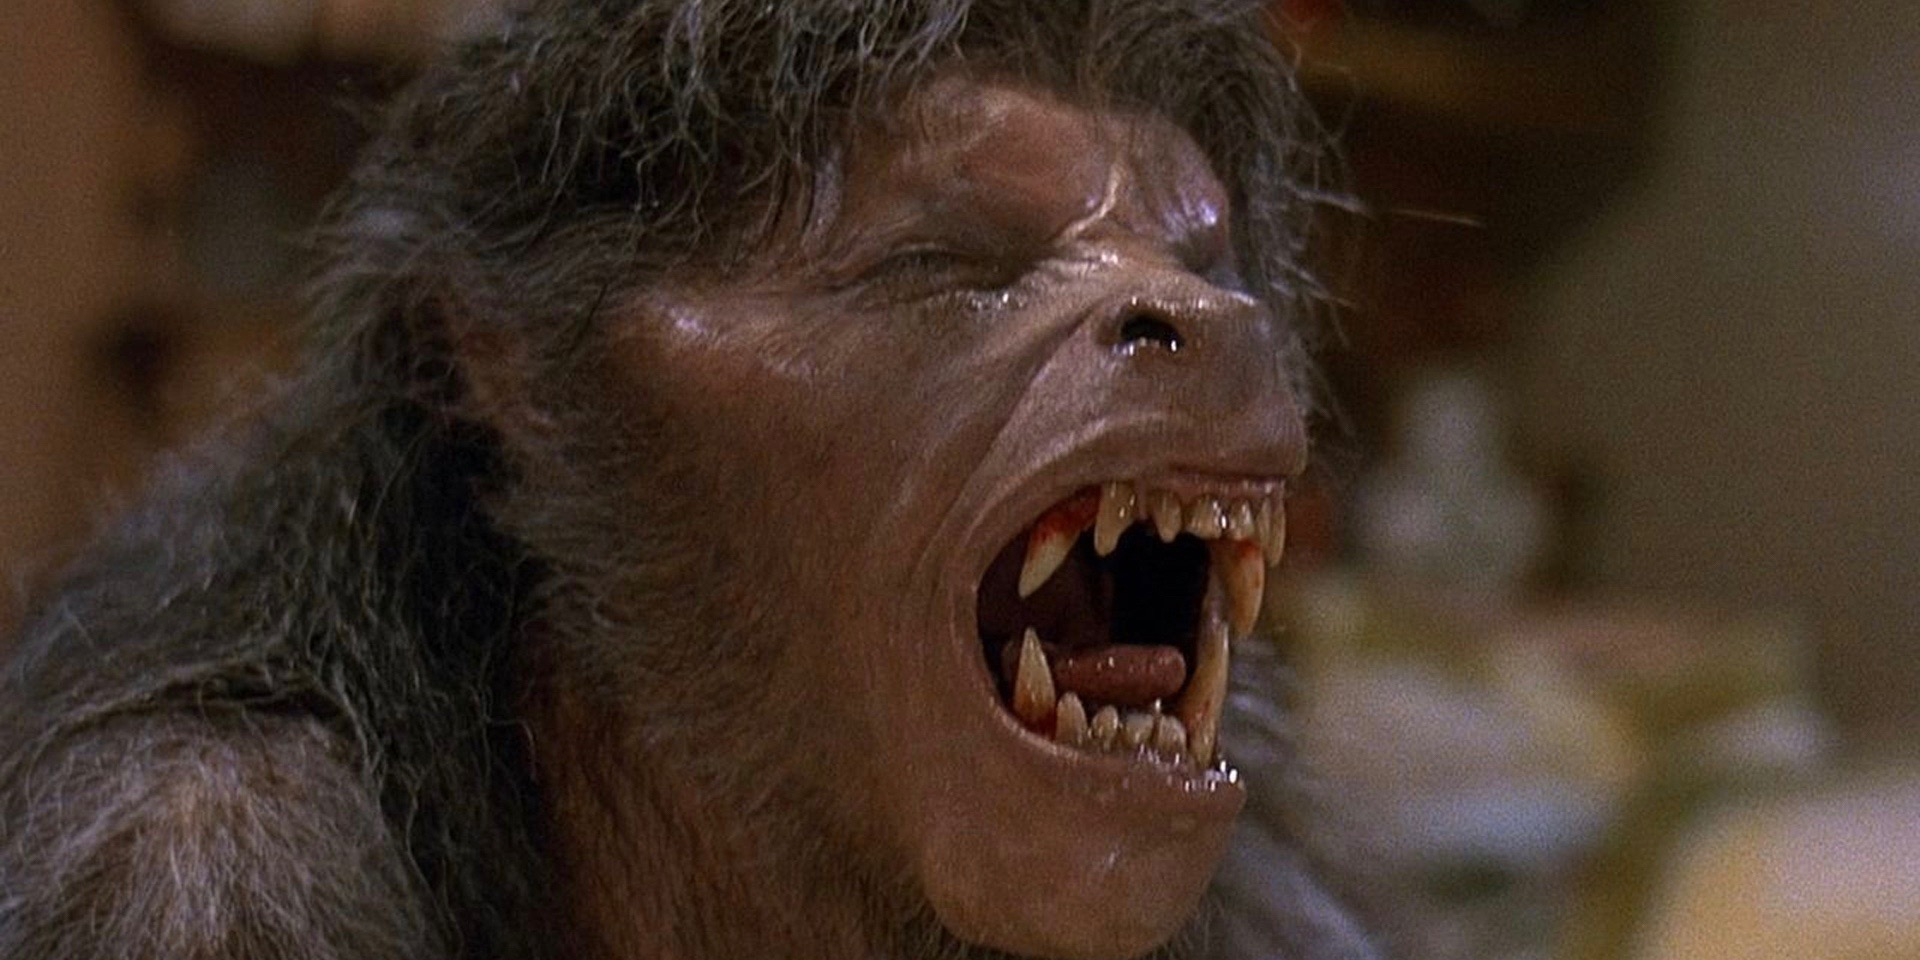 Transformation in An American Werewolf in London